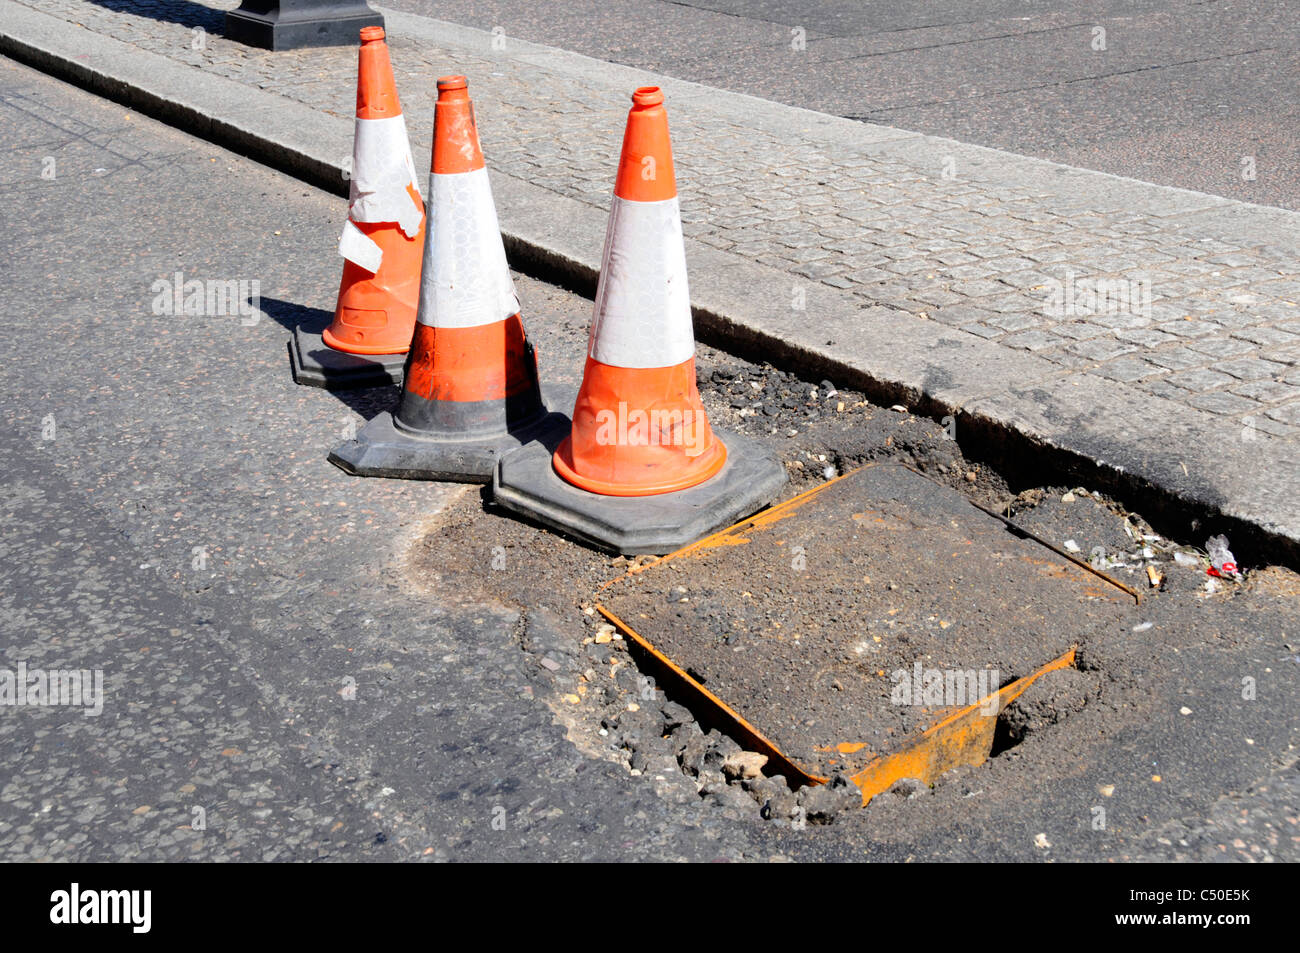 Potholes around manhole cover in London street - Stock Image